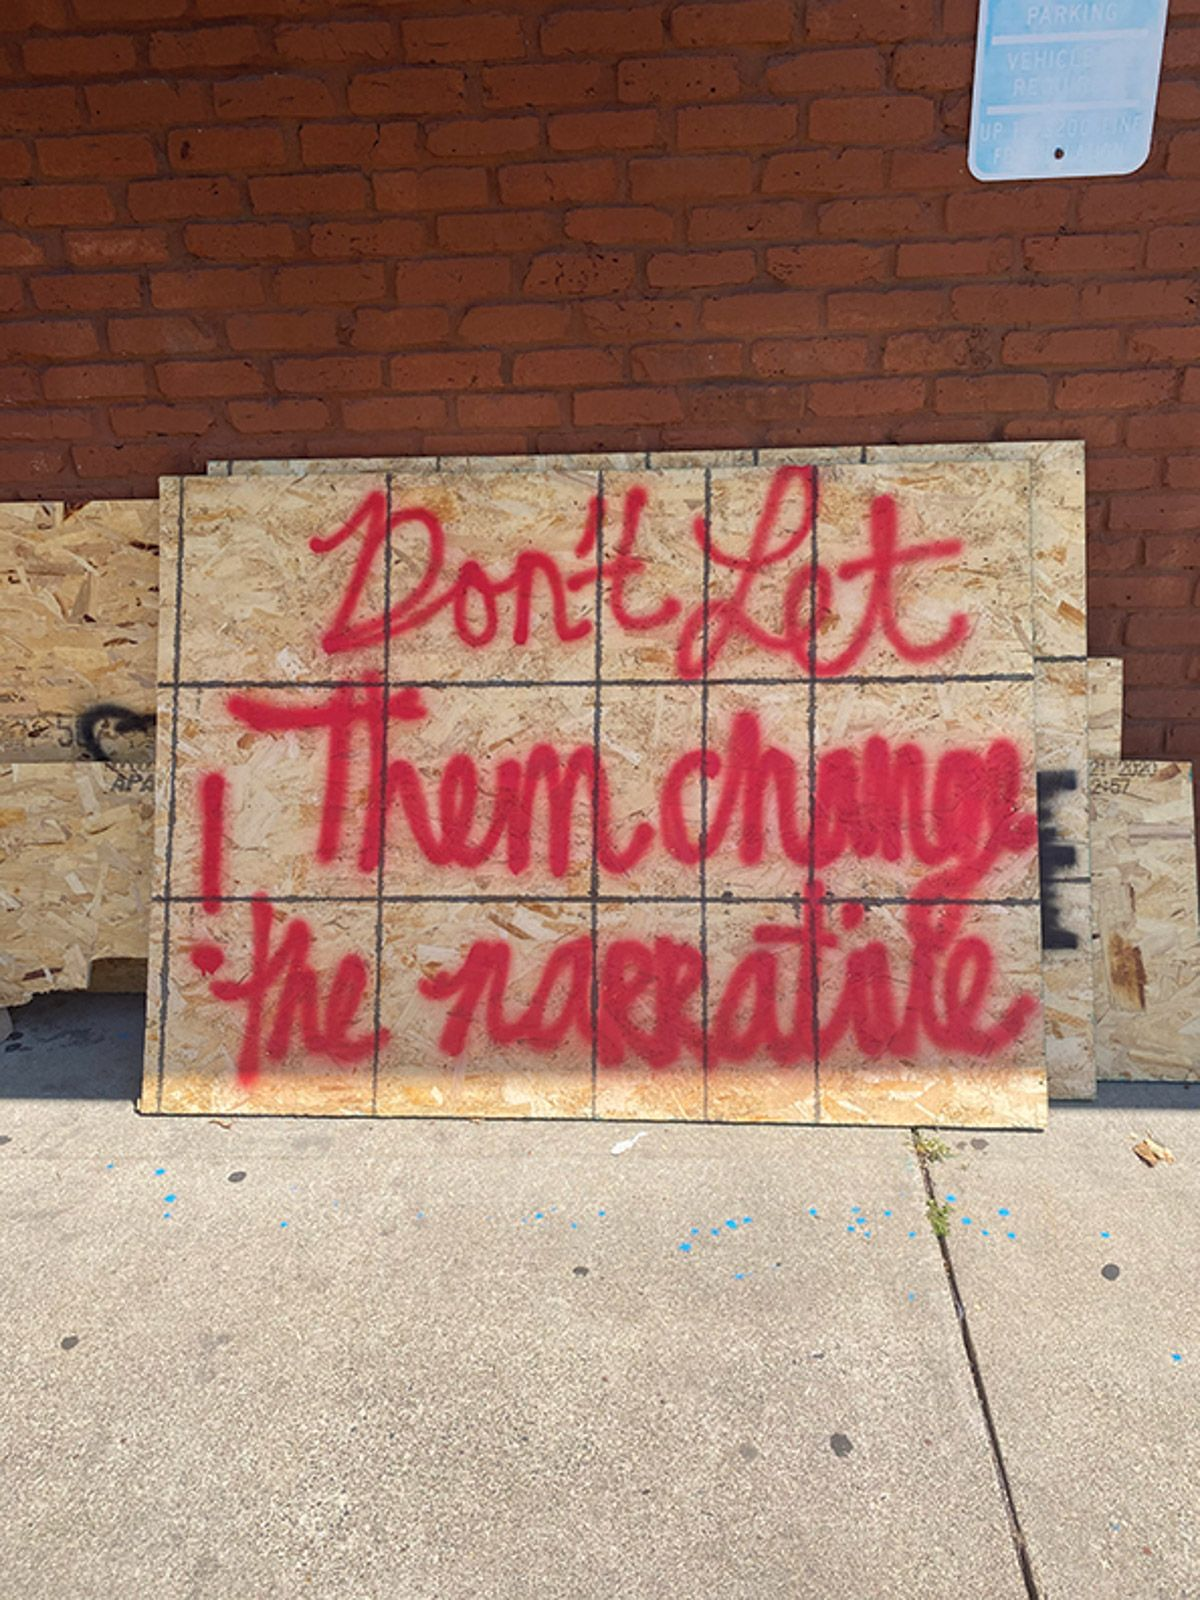 Raw, powerful words written on a board that covered a fast-food restaurant's windows during protests